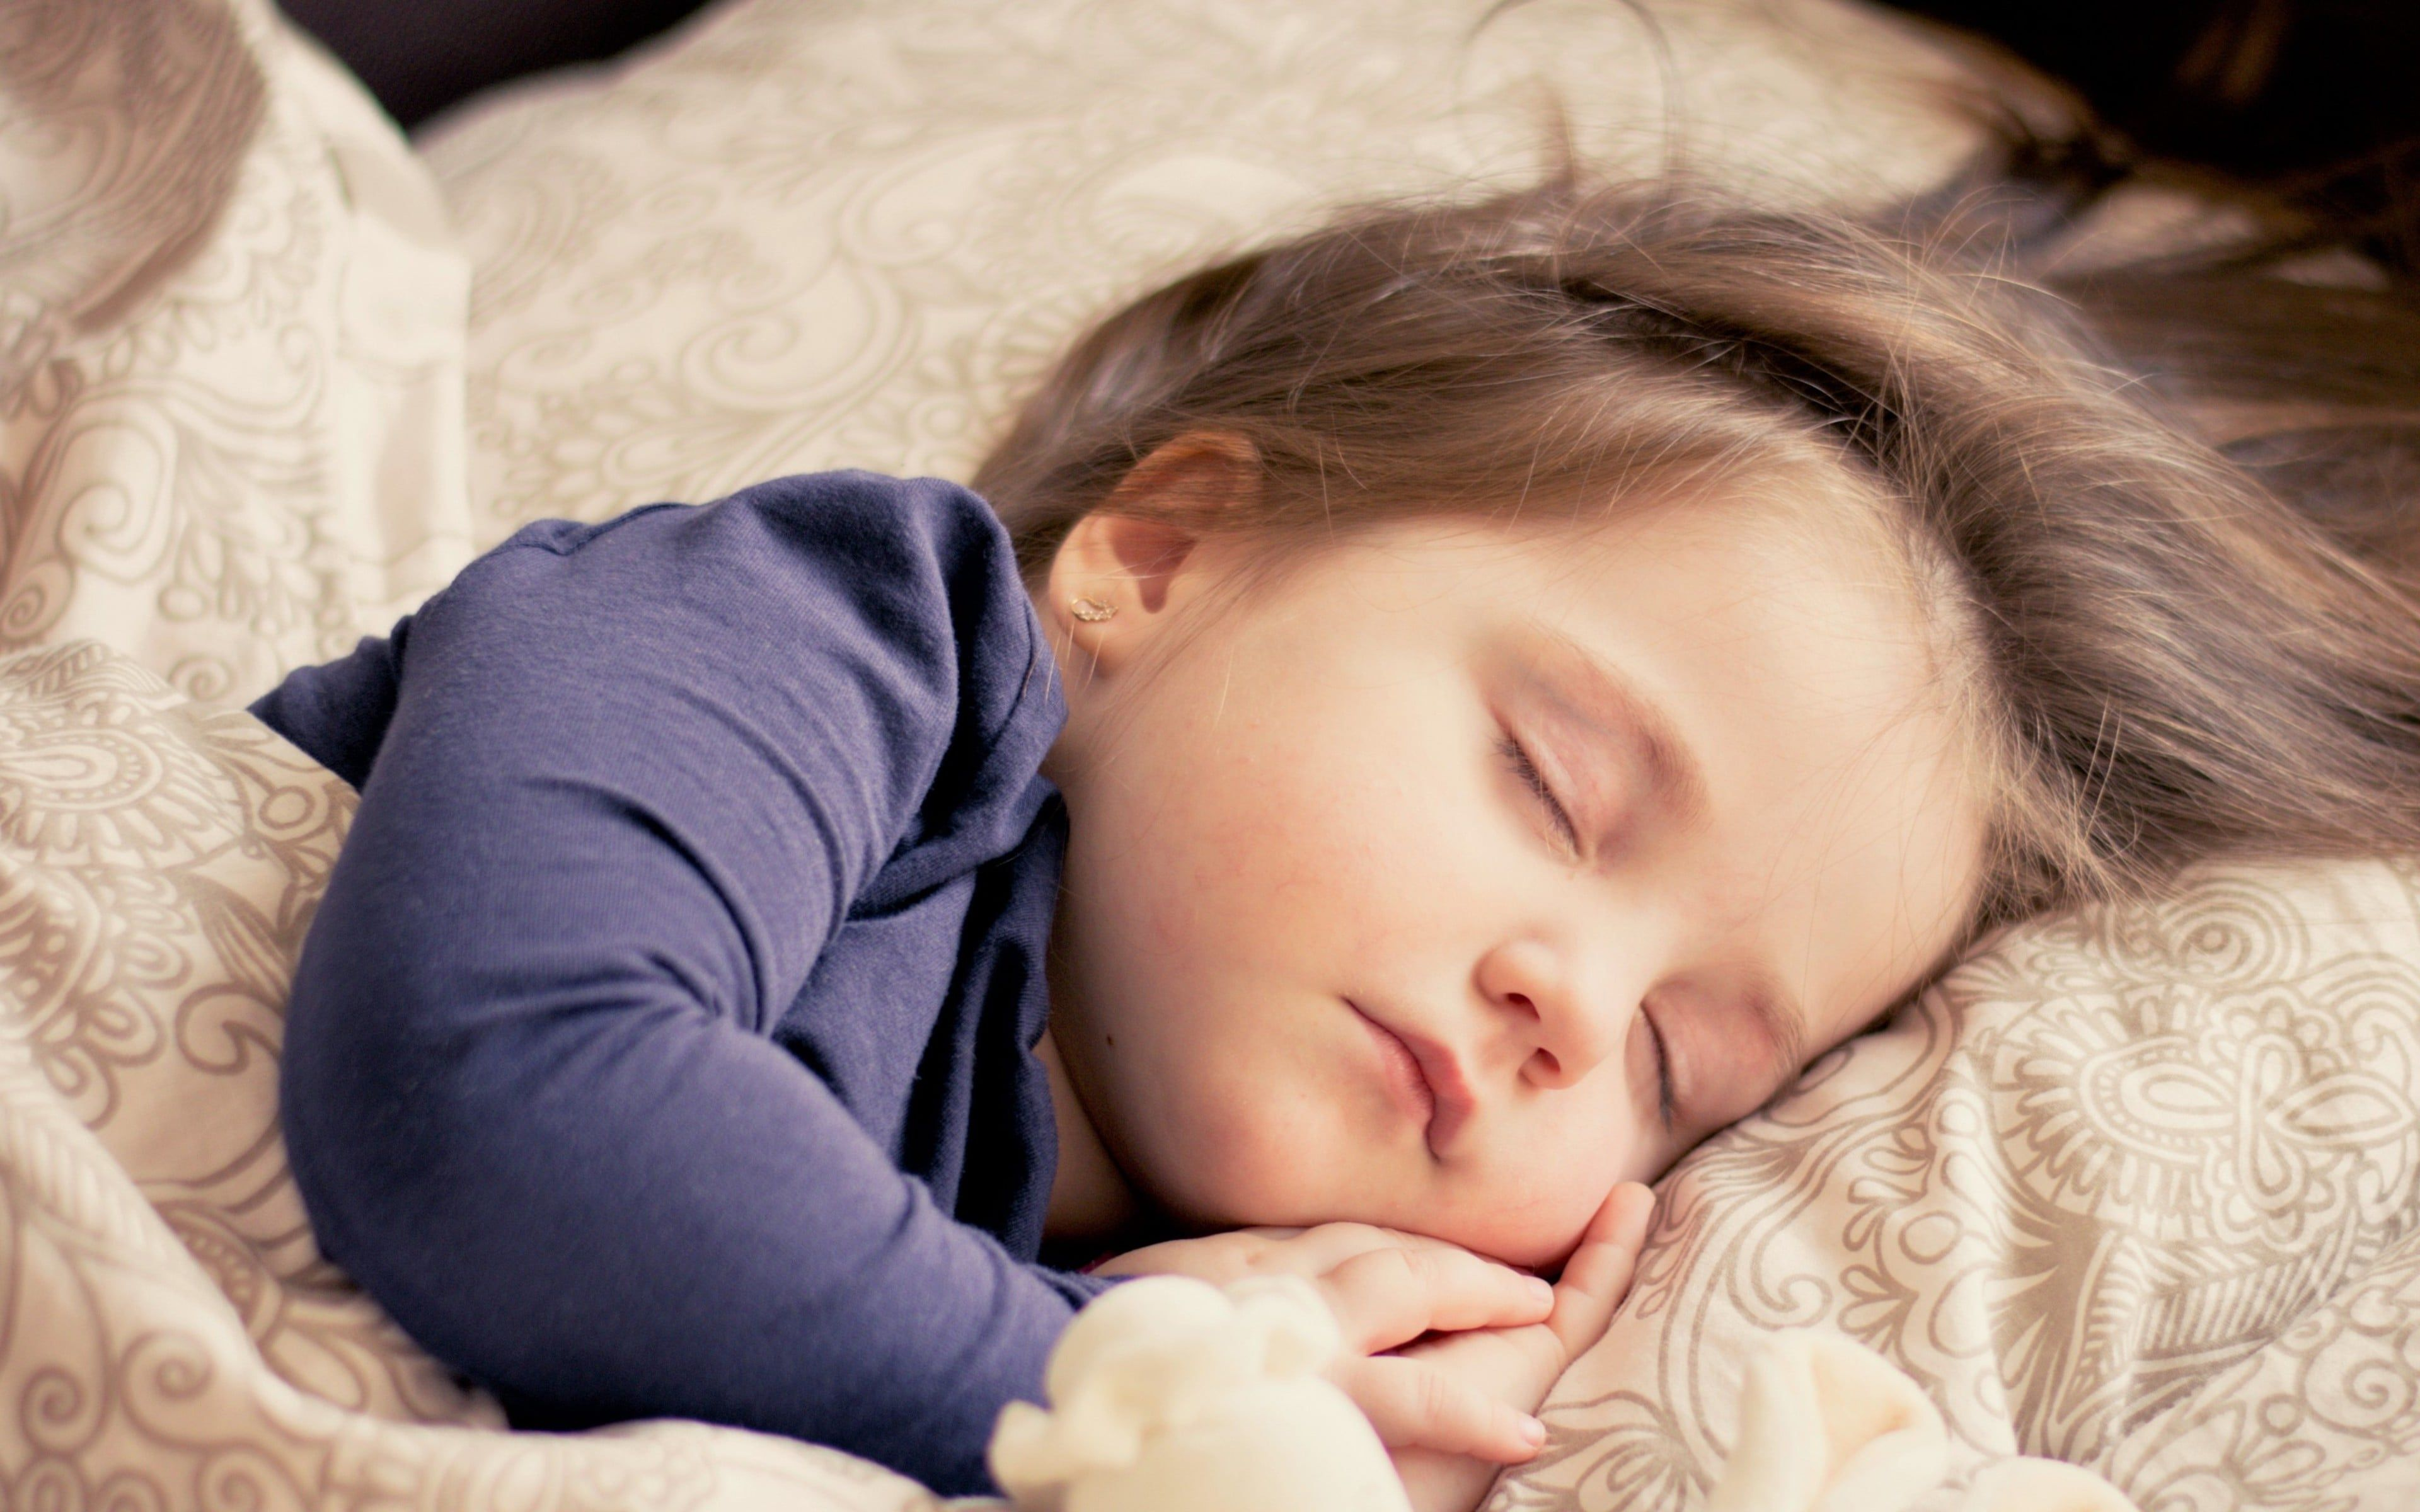 Domain For Sale Kids Sleep Baby Wallpaper National Nap Day